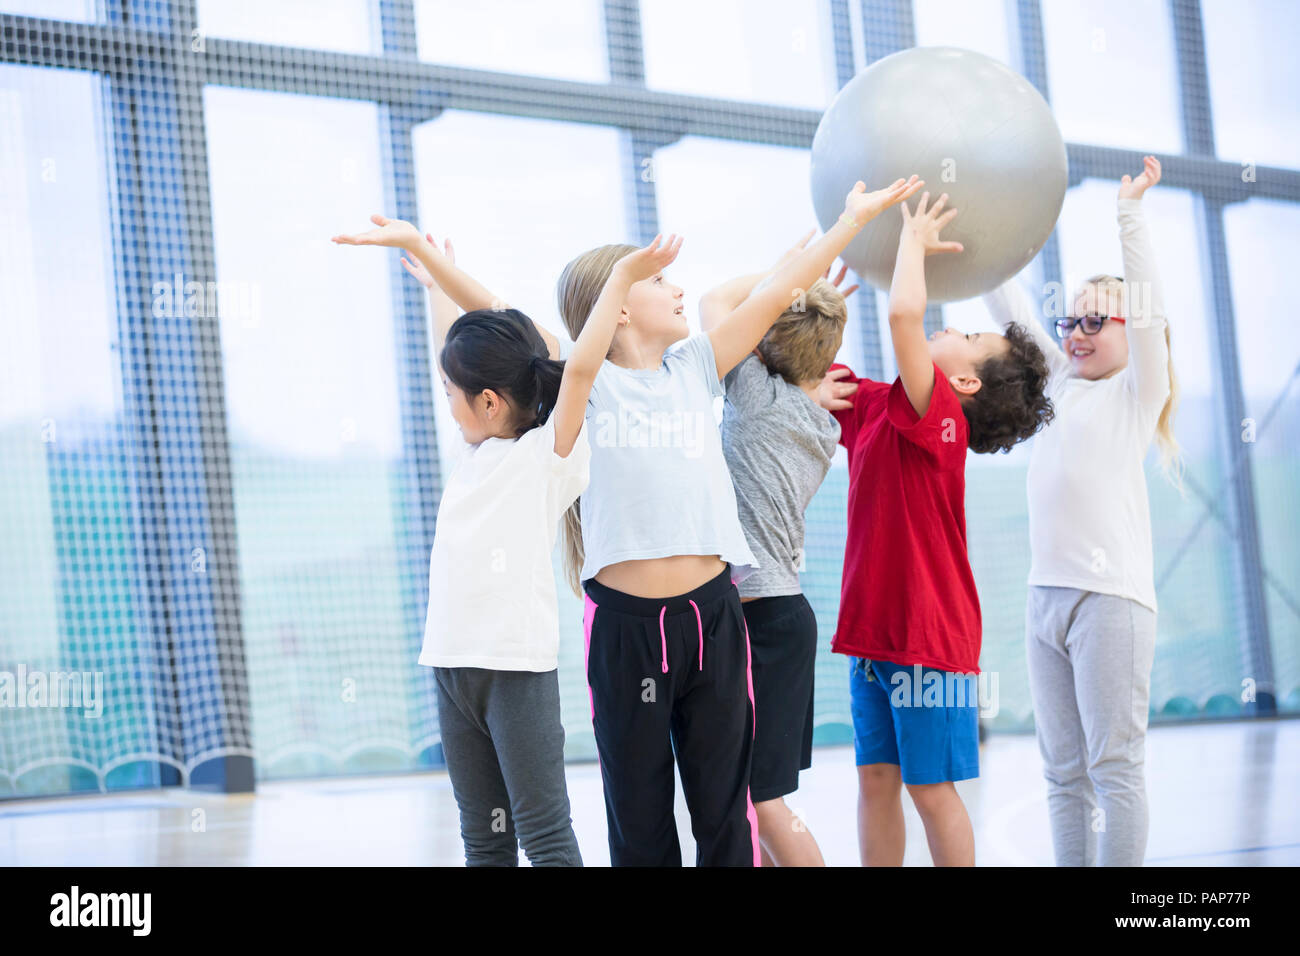 Pupils handing over gym ball in gym class - Stock Image